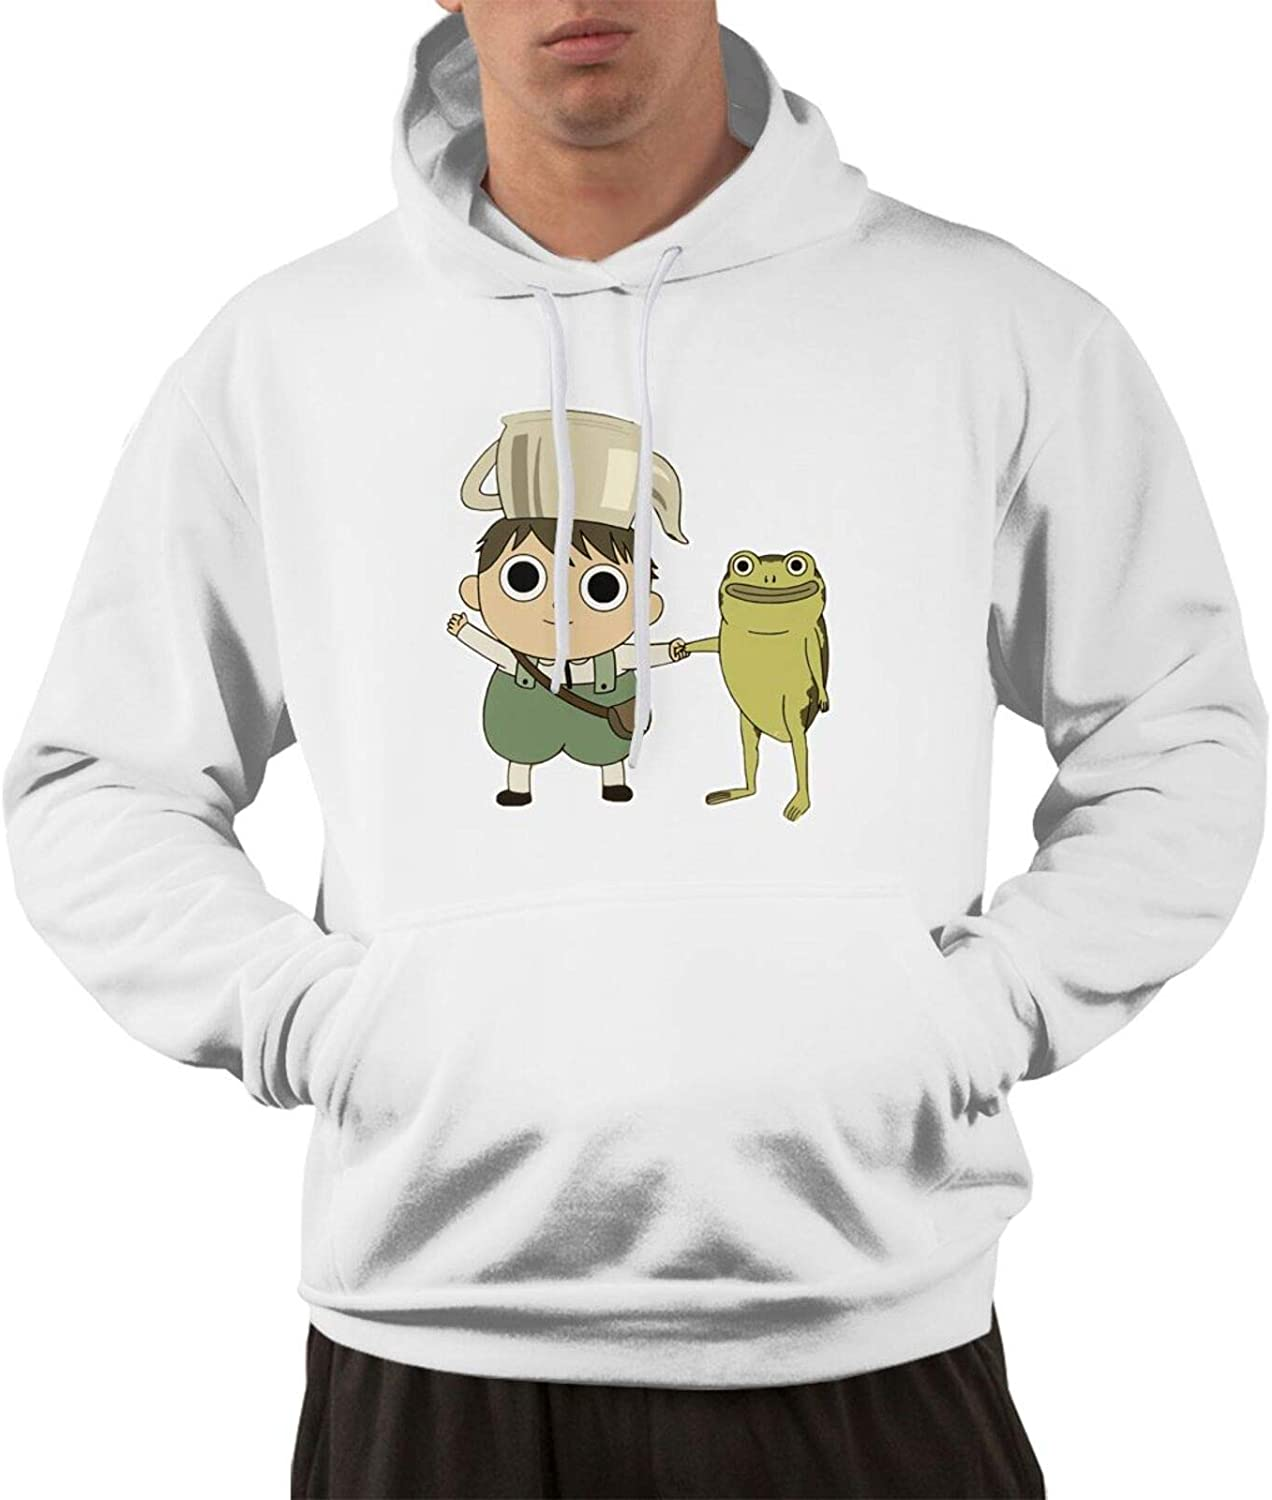 Wehoiweh Over The Garden Wall Men's Funny Hoodie Sweatershirt Hooded White